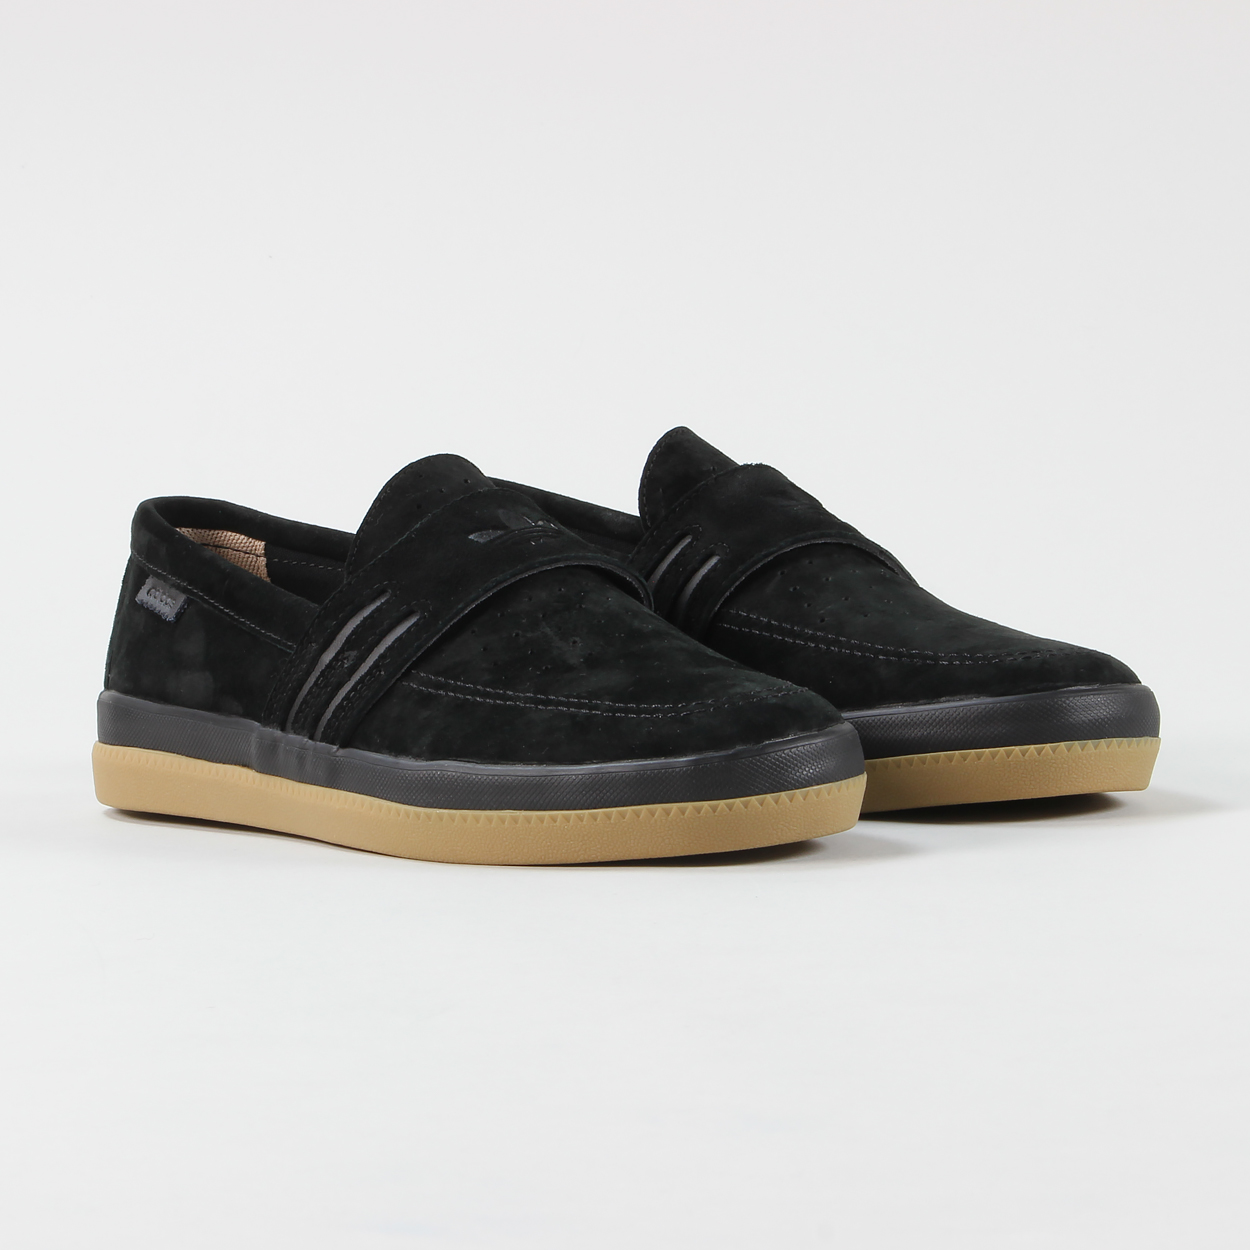 finest selection f365e a2e58 A skate shoe inspired by Adidas classic penny loafer shoe of the same  name, the Acapulco has a suede upper and a gum rubber sole and style for  miles.